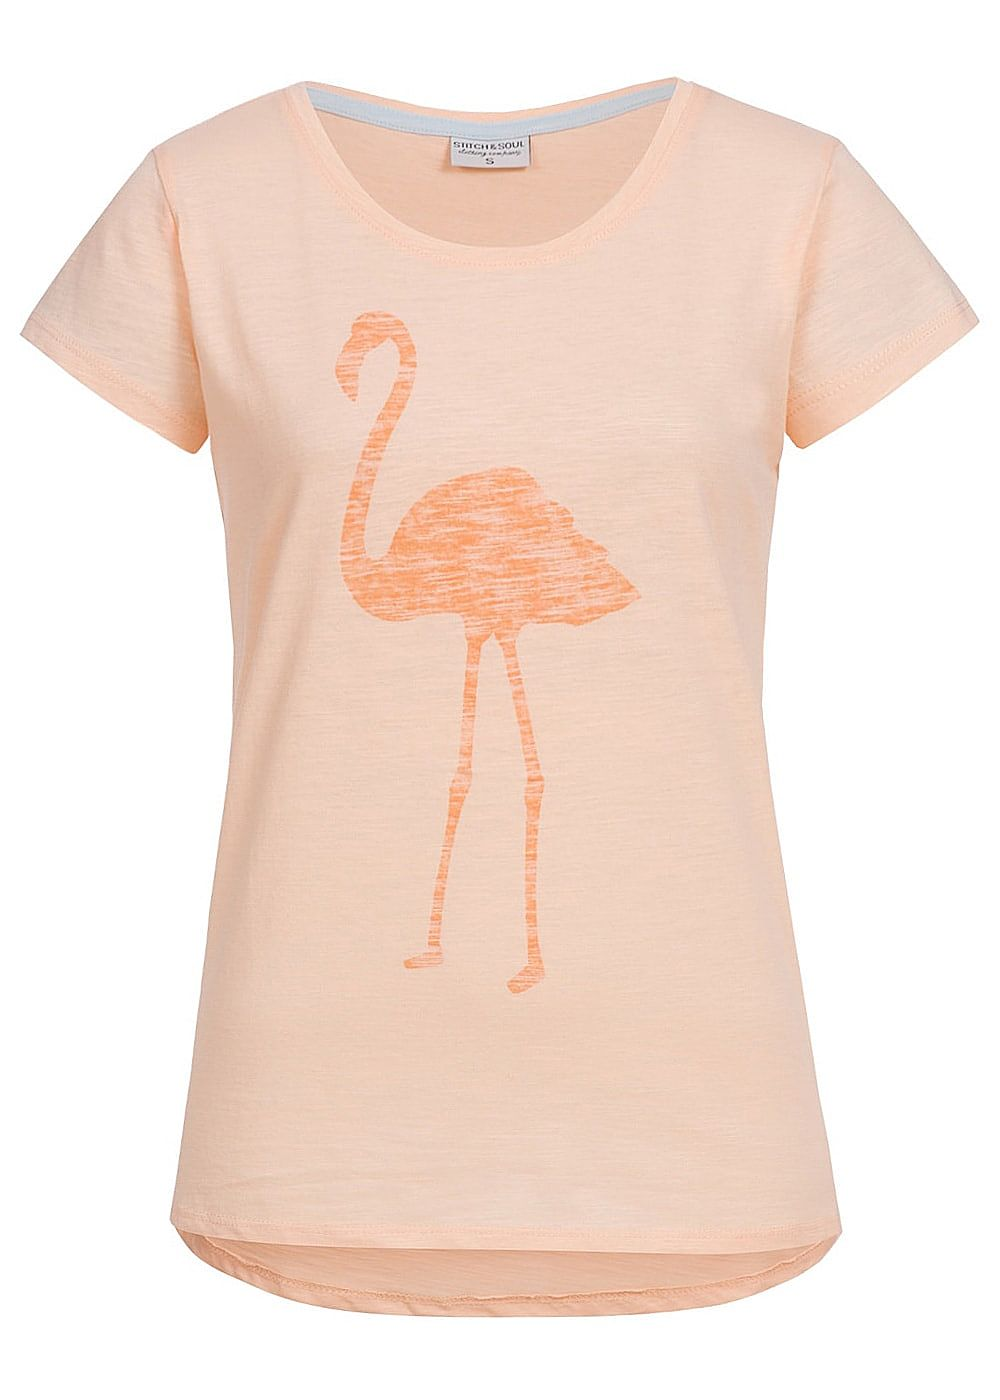 eight2nine damen t shirt flamingo print vokuhila by stitch and soul pastel orange 77onlineshop. Black Bedroom Furniture Sets. Home Design Ideas